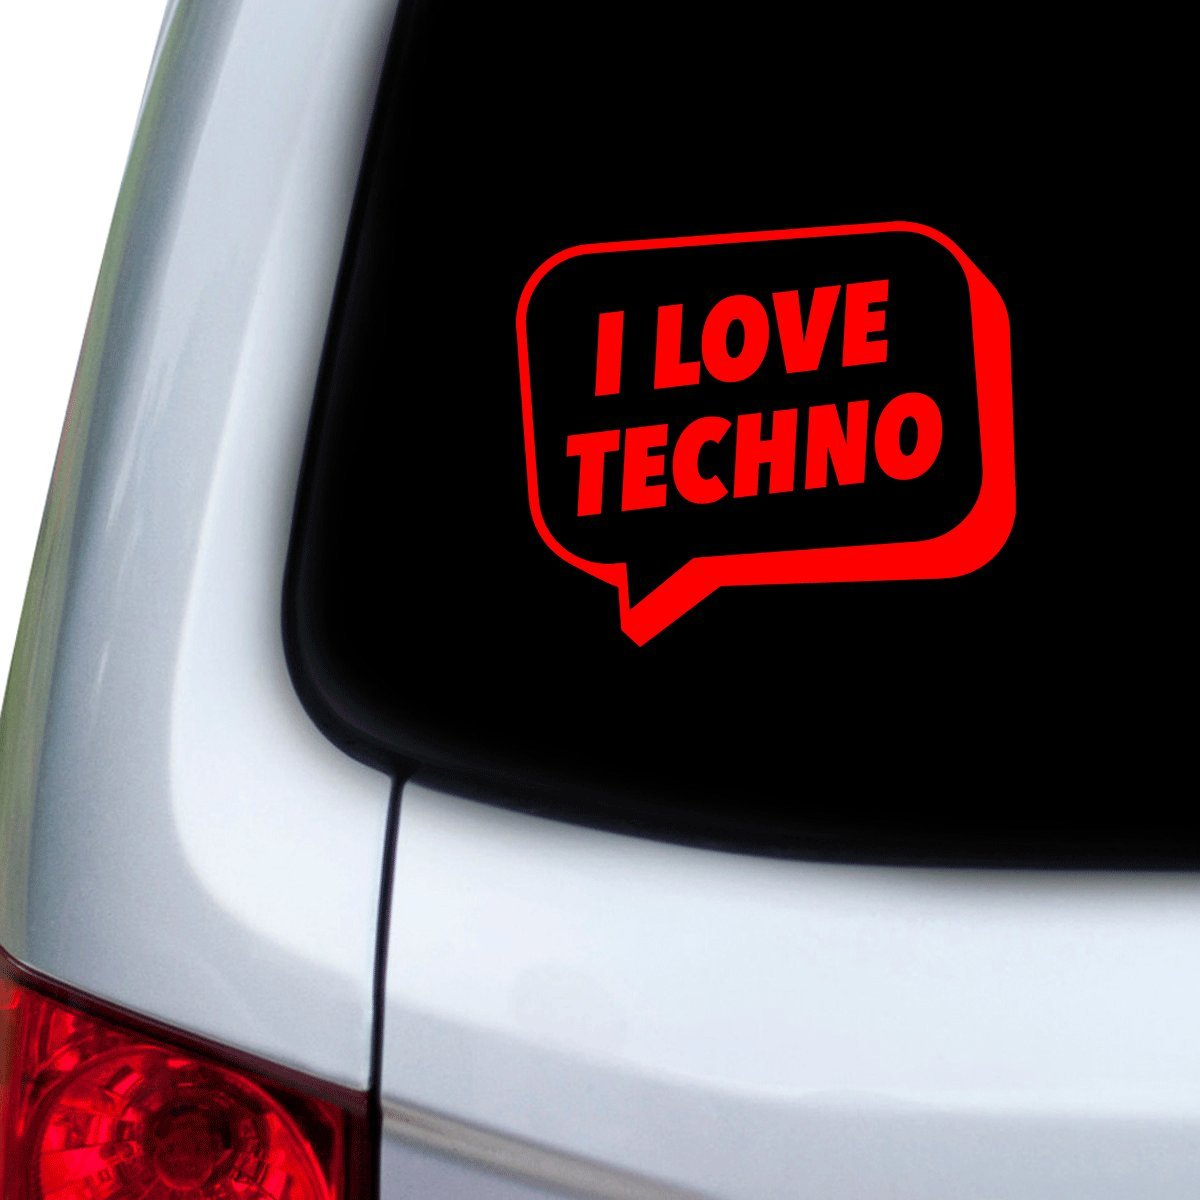 StickAny Car and Auto Decal Series I Love Techno Speech Bubble Sticker for Windows Red Hoods Doors